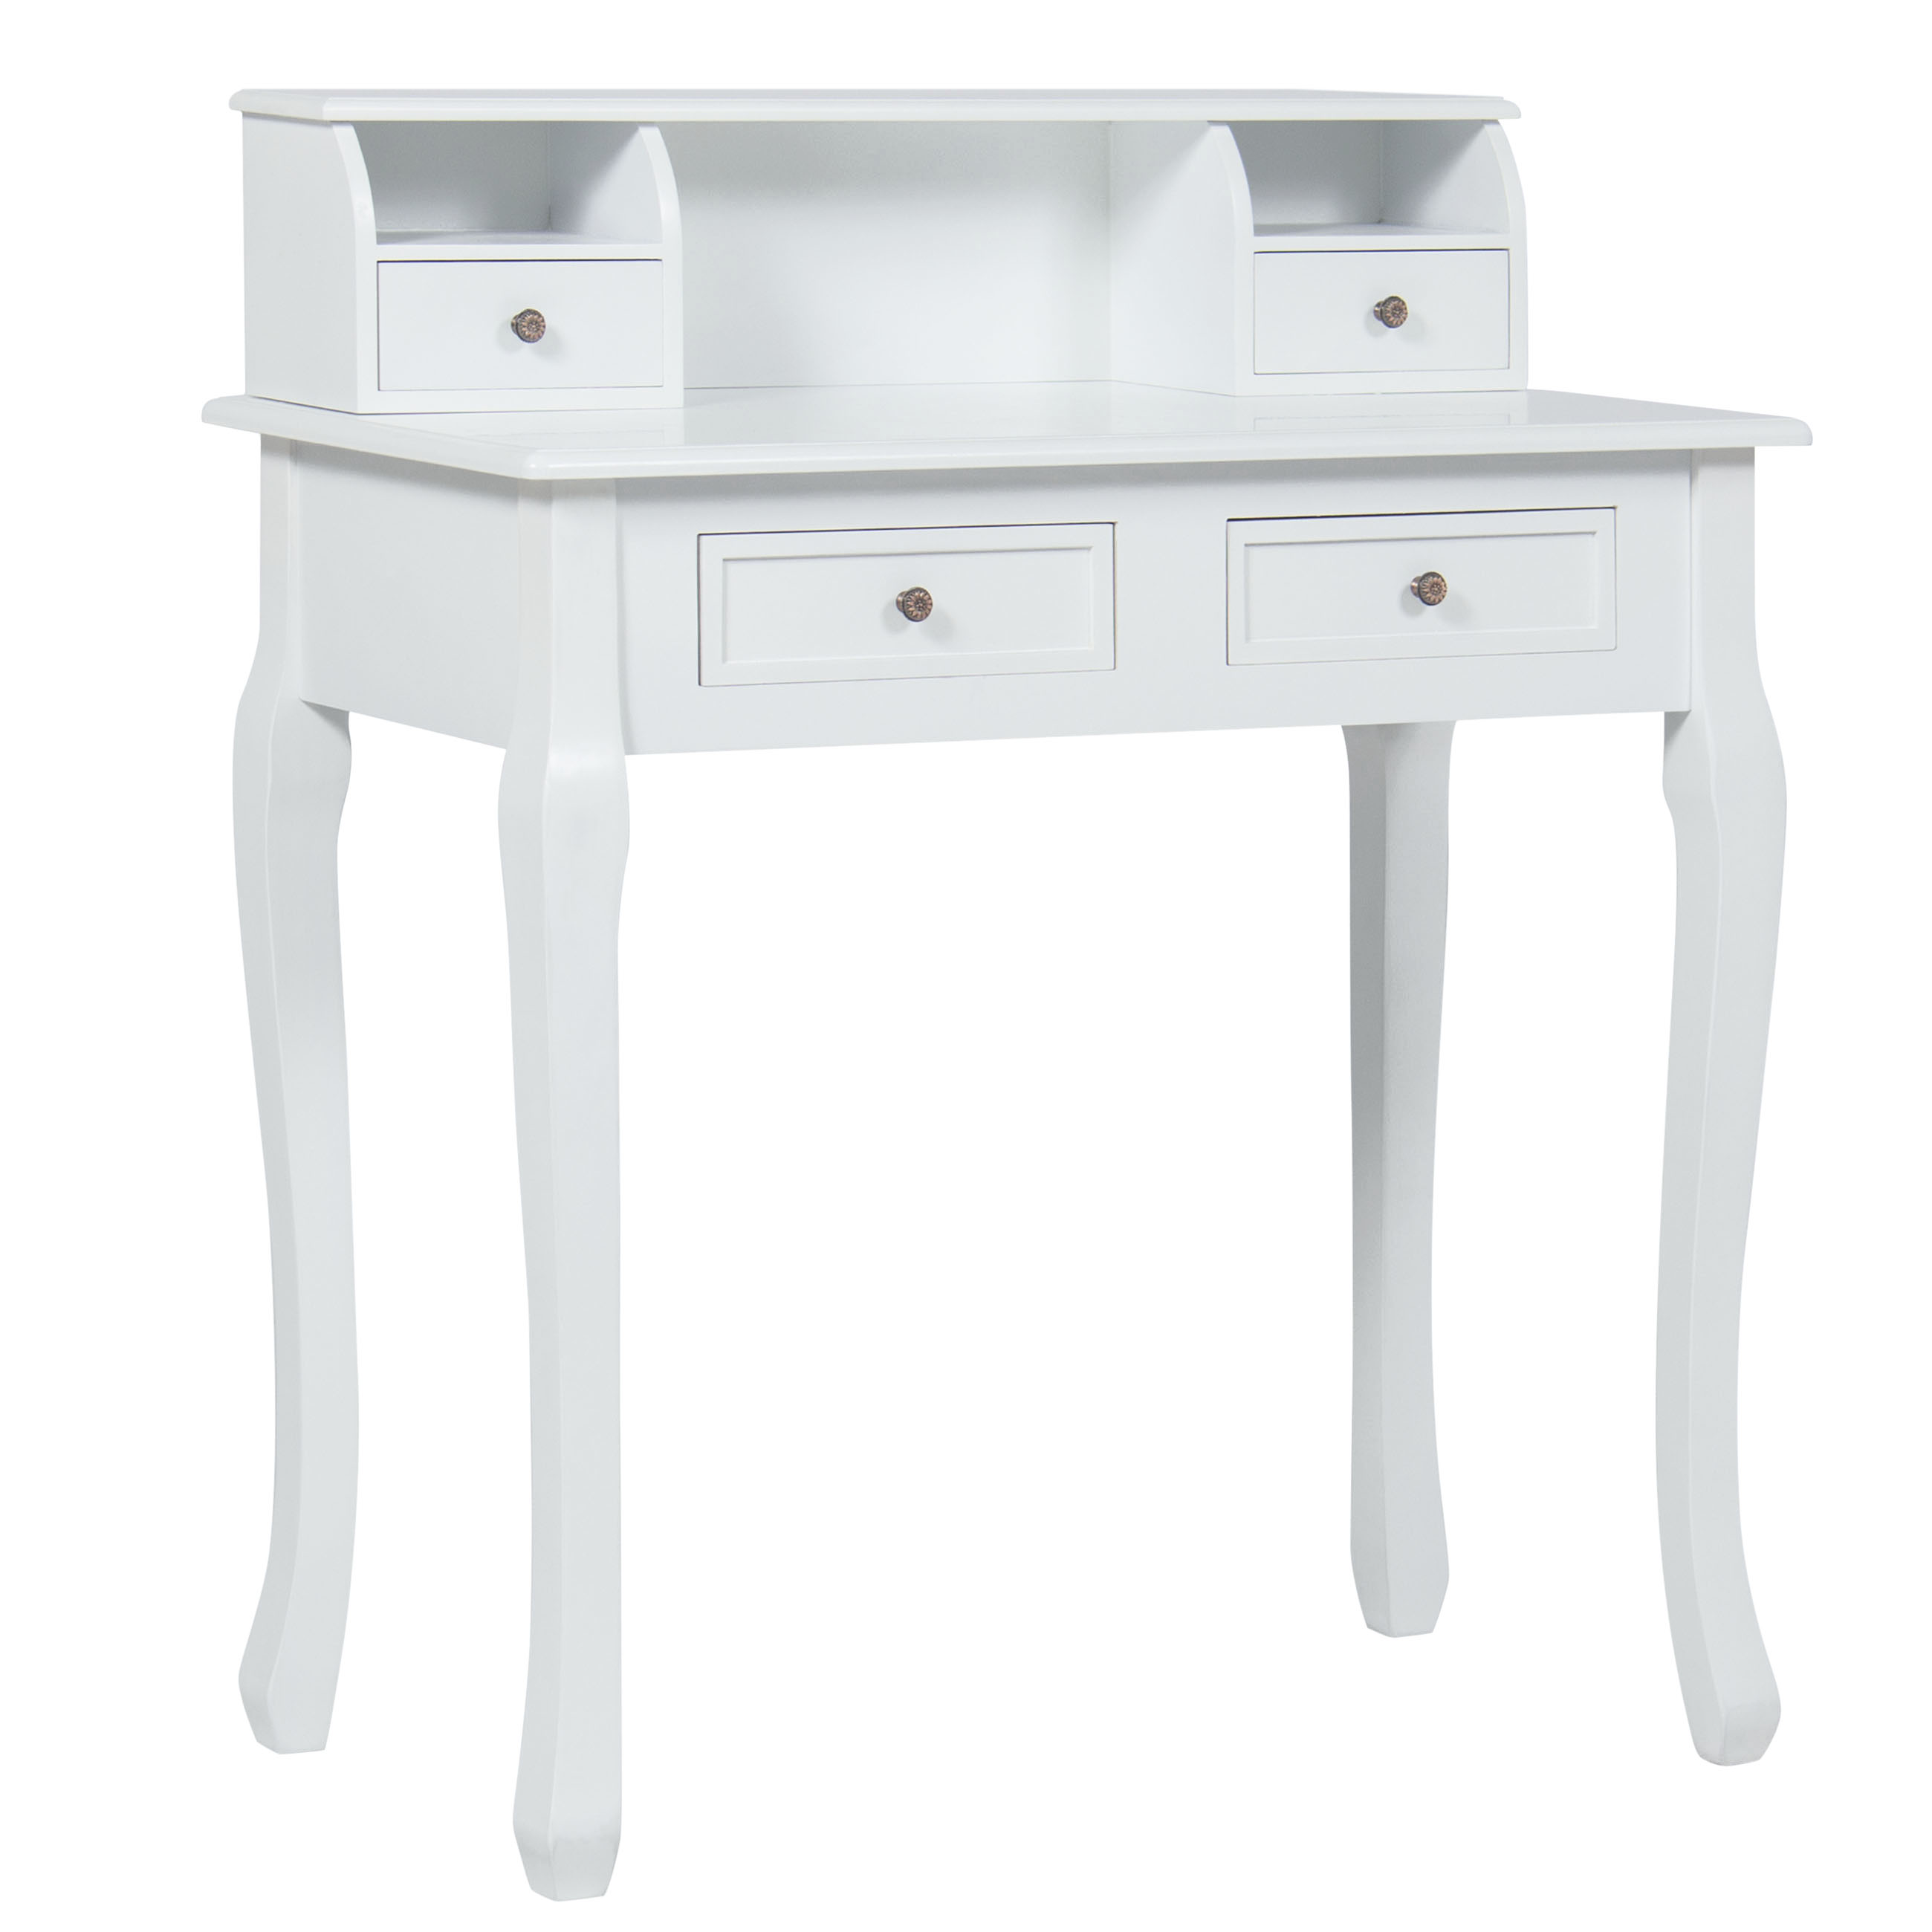 White desk for home office Wall Best Choice Products Home Office Furniture Writing Desk Work Station Computer Laptop Table White Walmartcom Ana White Best Choice Products Home Office Furniture Writing Desk Work Station